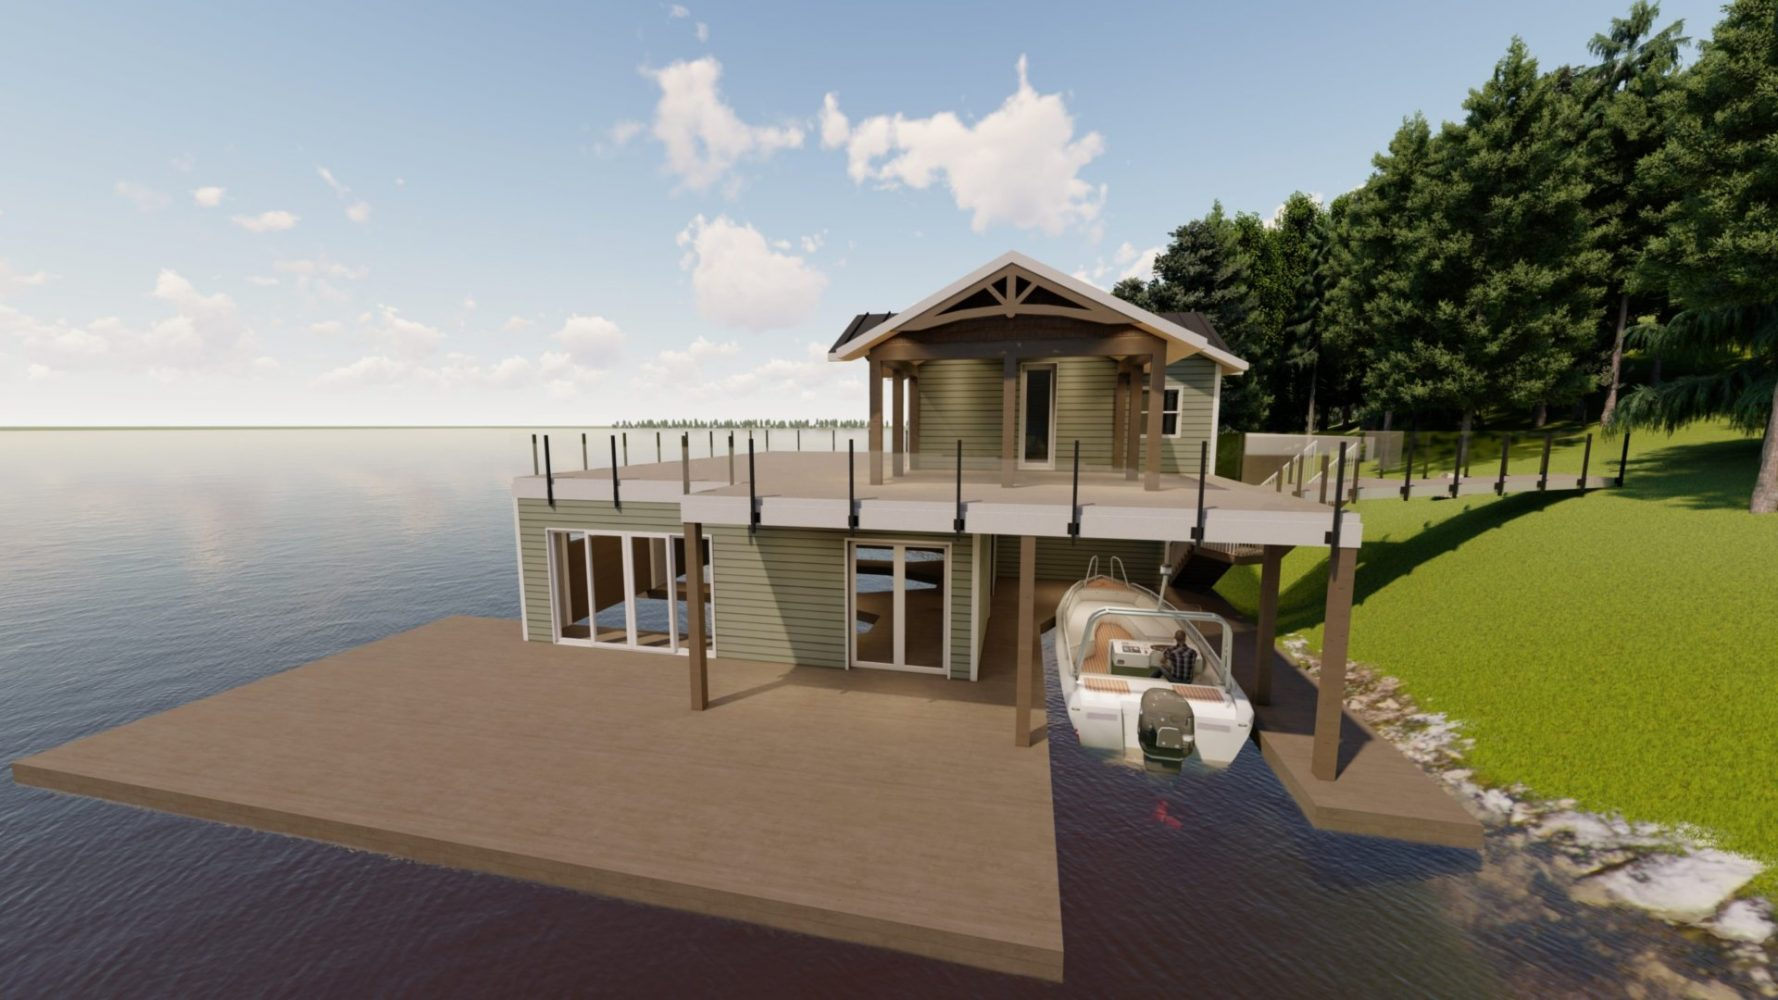 3D rendering of Muskoka boathouse by Spencer Douglas and PattyMac